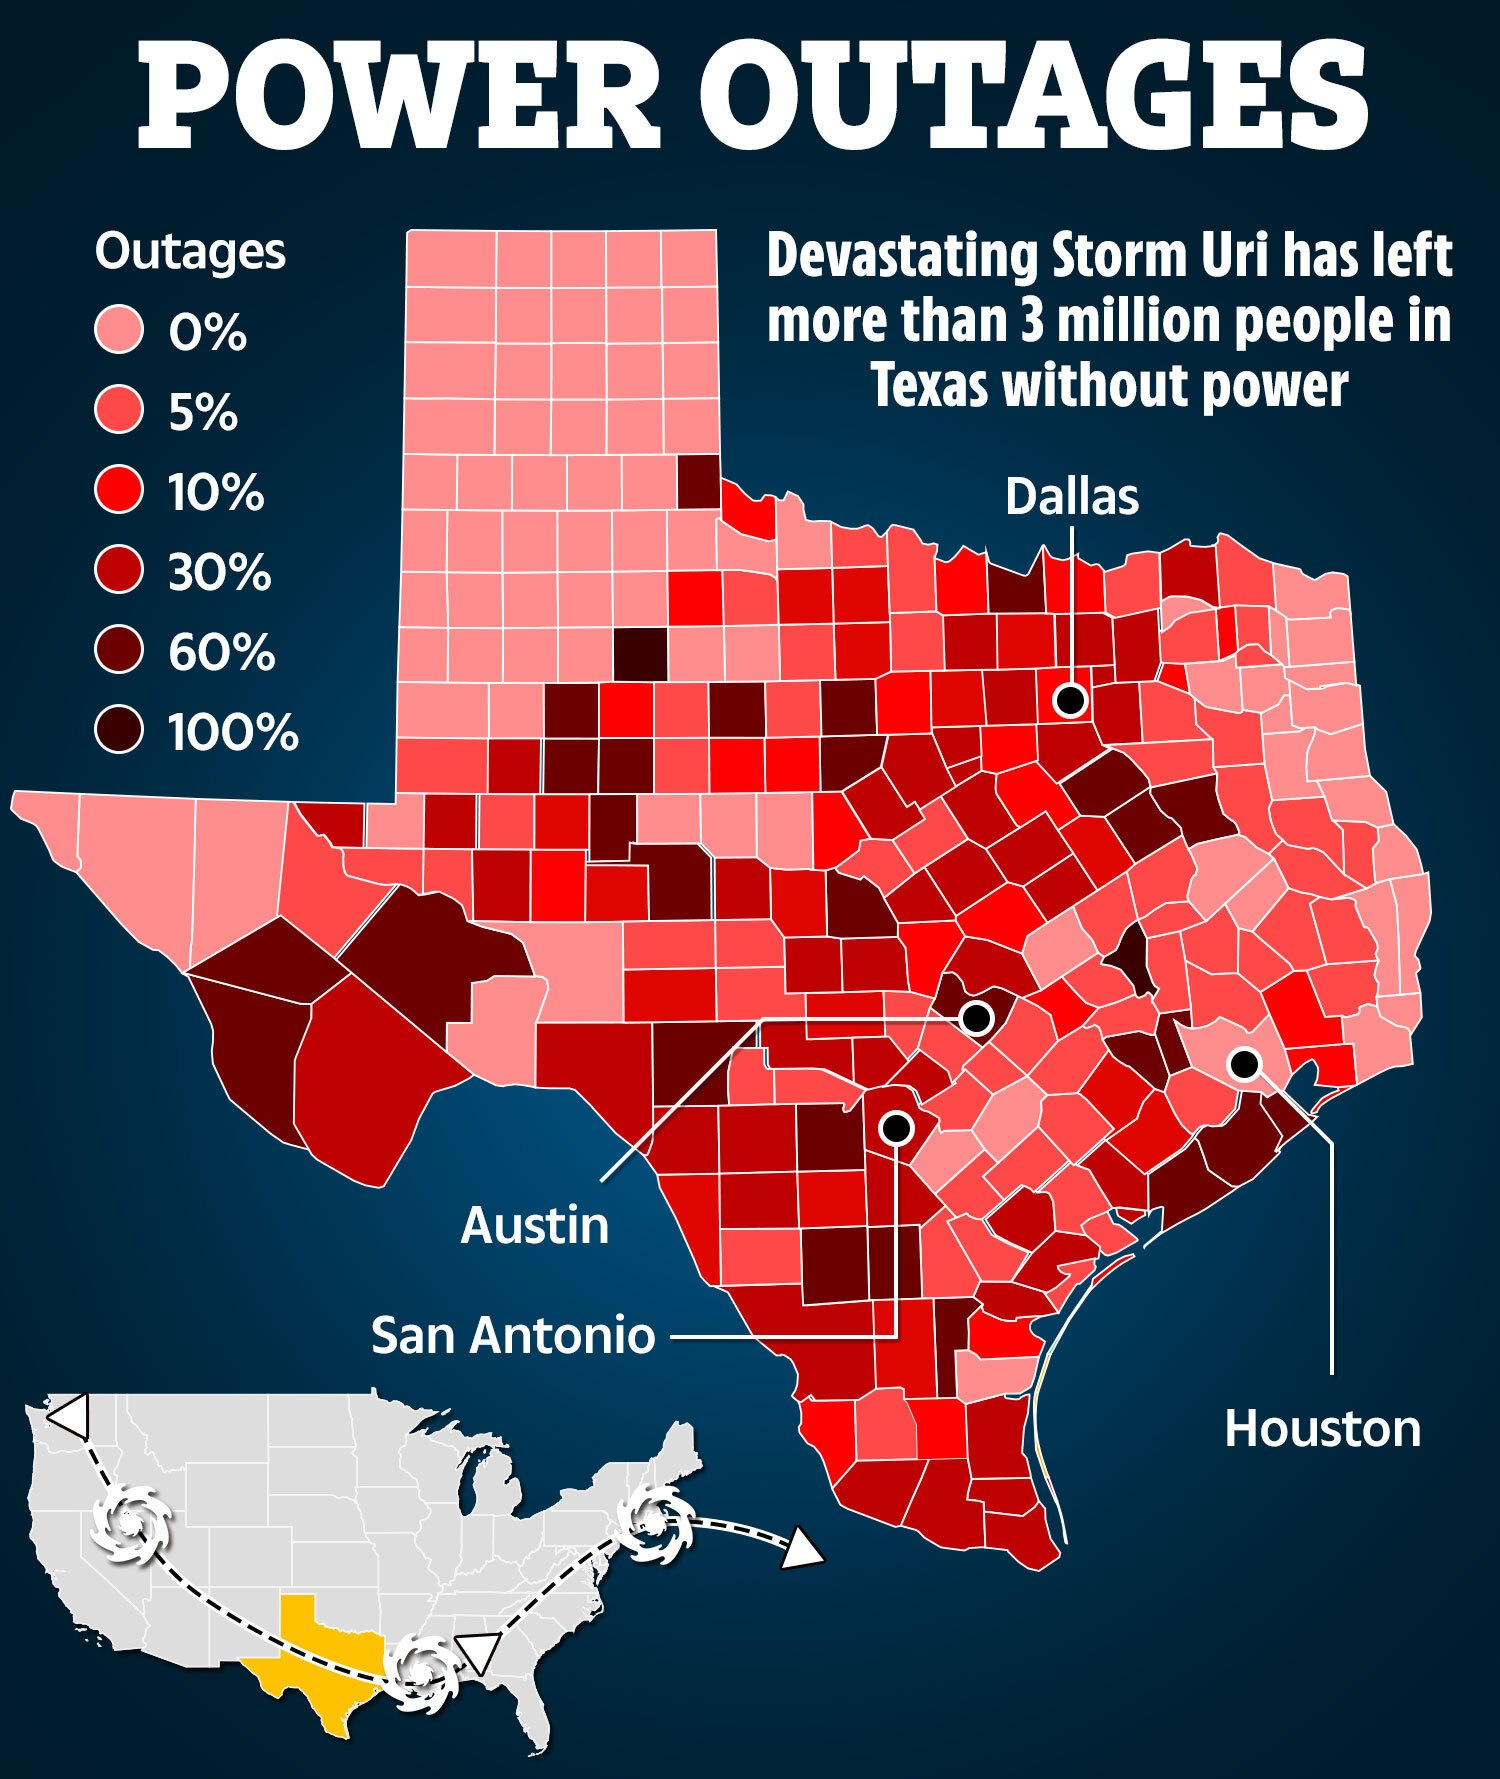 DD-COMPOSITE-TEXAS-POWER-OUTAGES-map-17-feb-v2